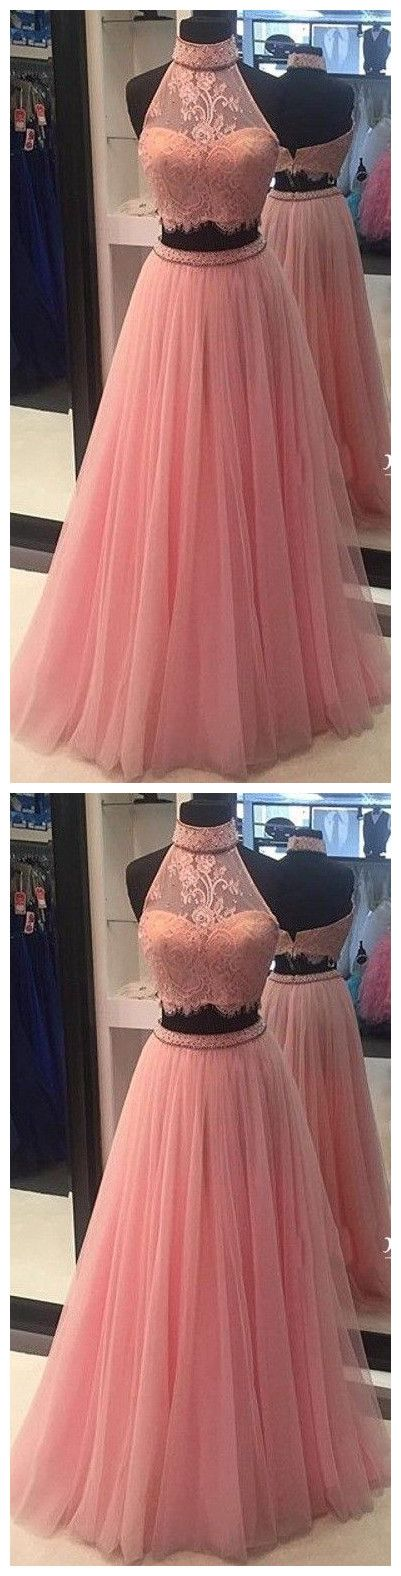 High Neck Lace Tulle Prom Dress evening dresses